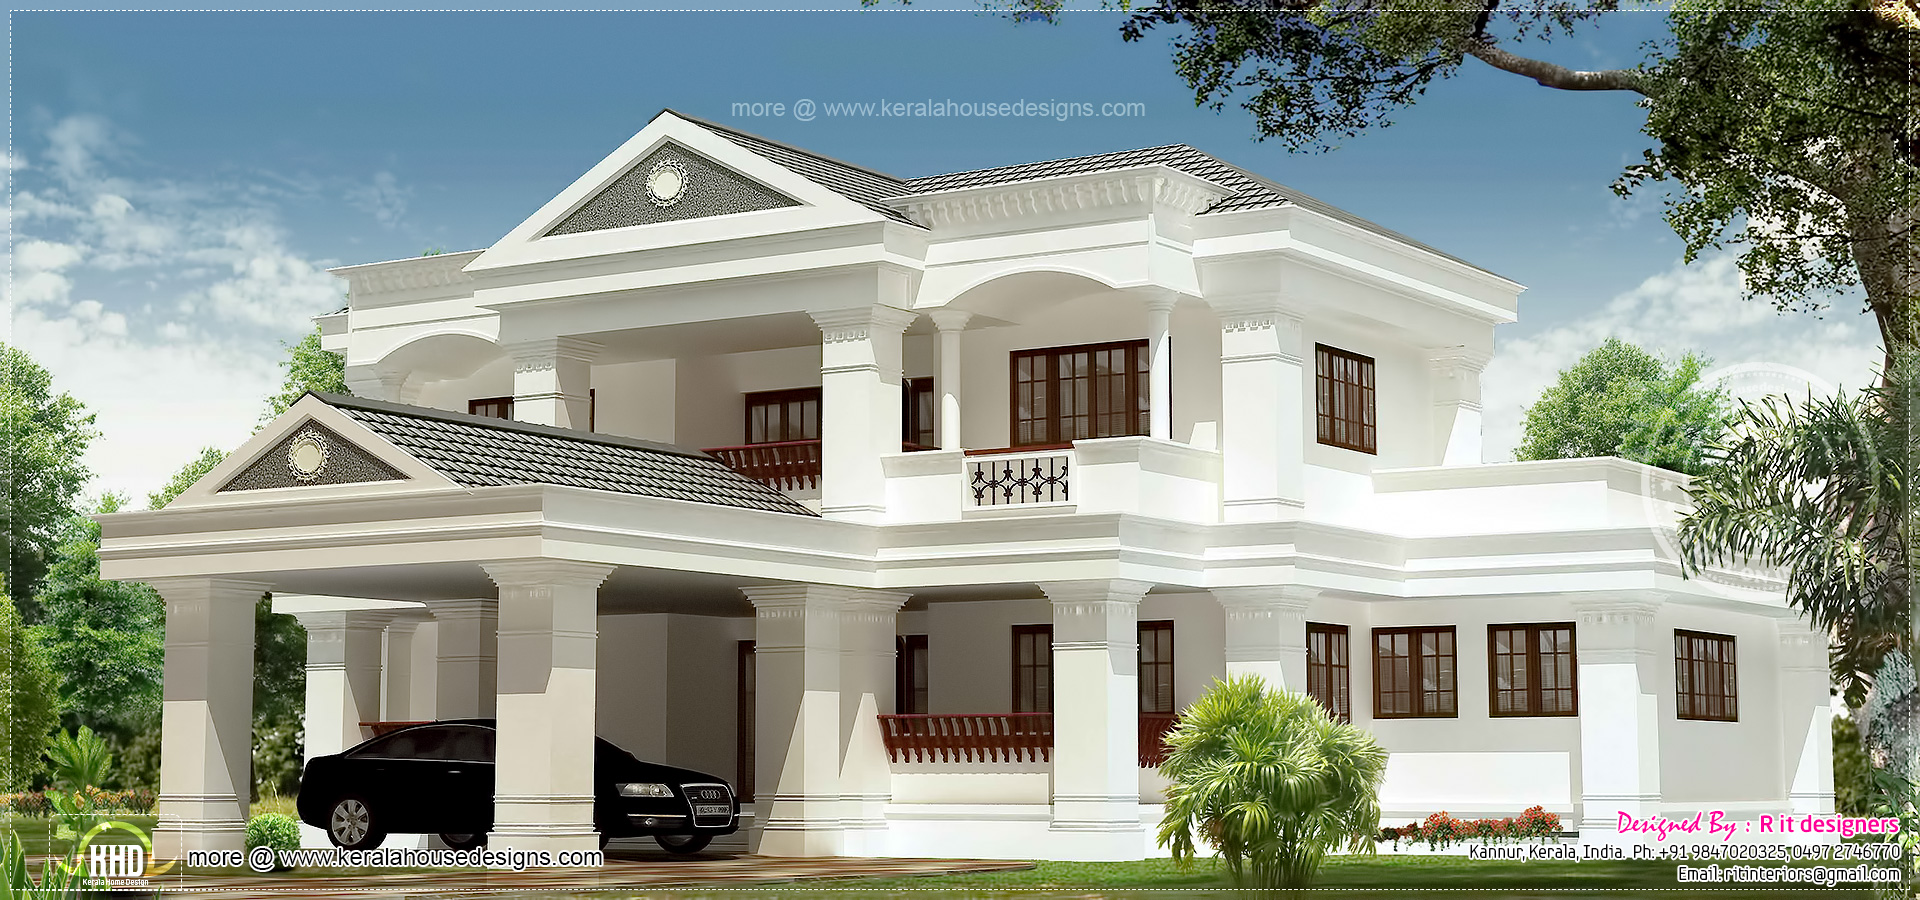 3100 luxury 5 bhk villa exterior kerala home for 3000 sq ft house plans kerala